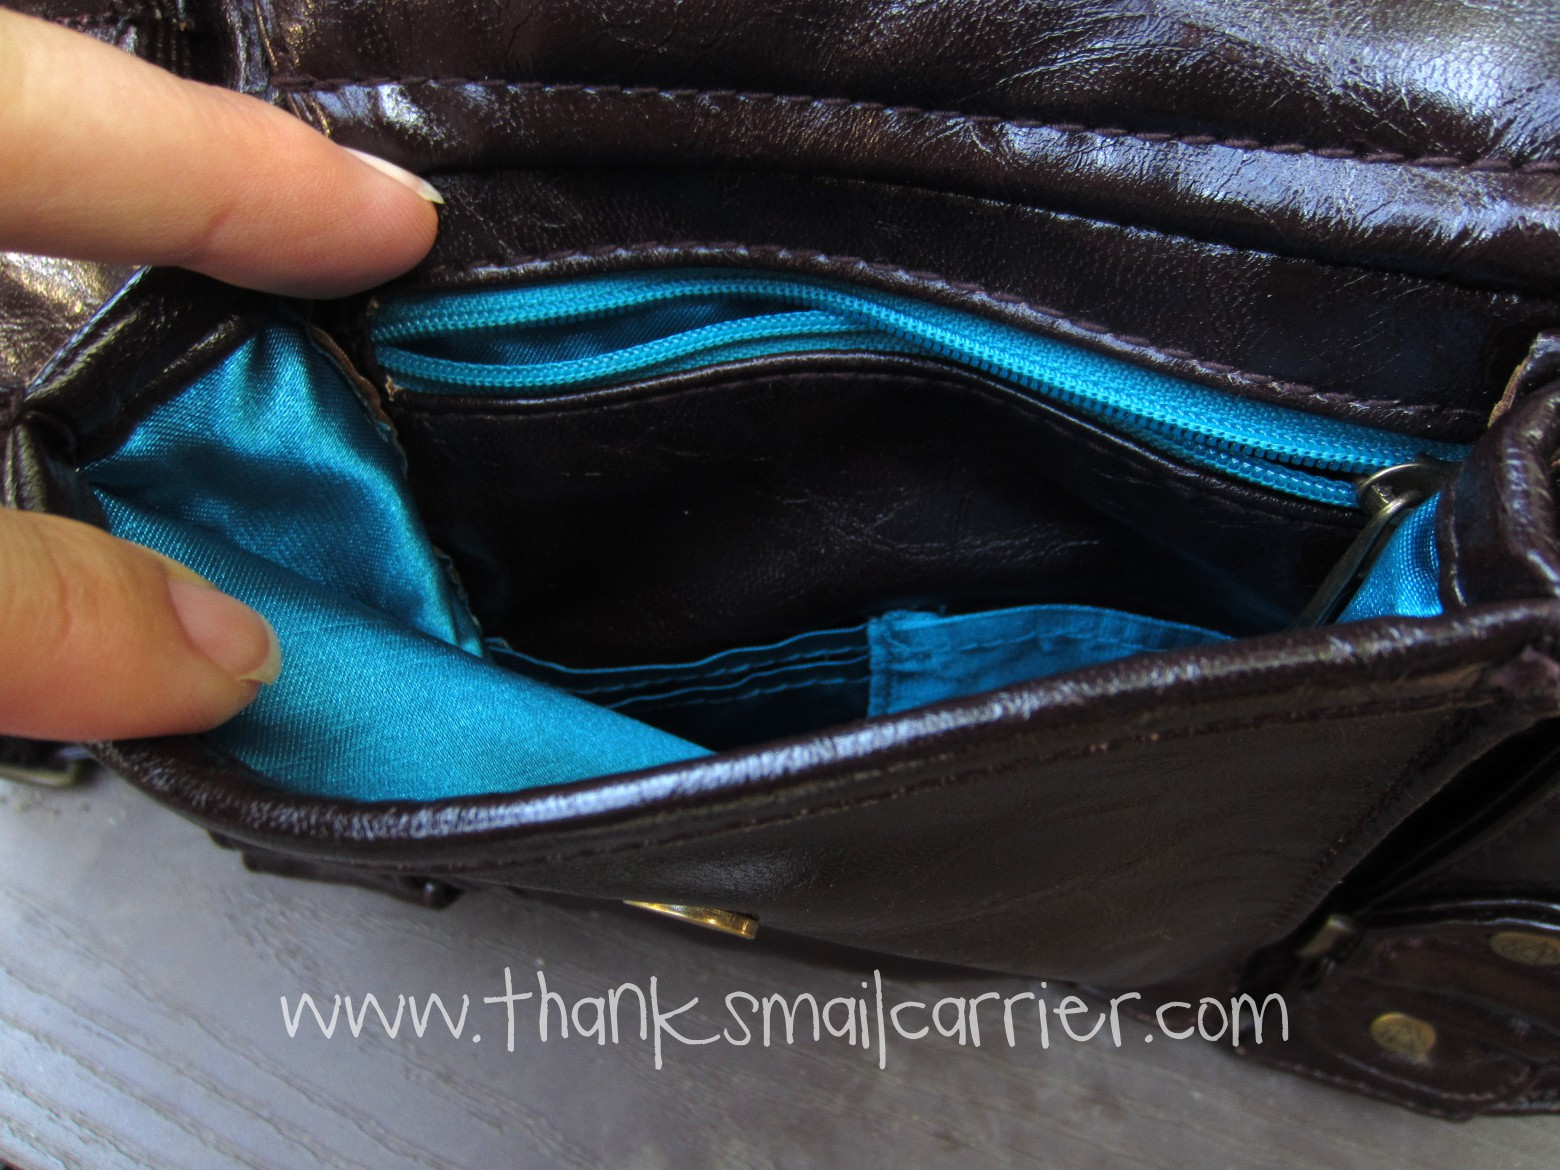 exterior purse pocket